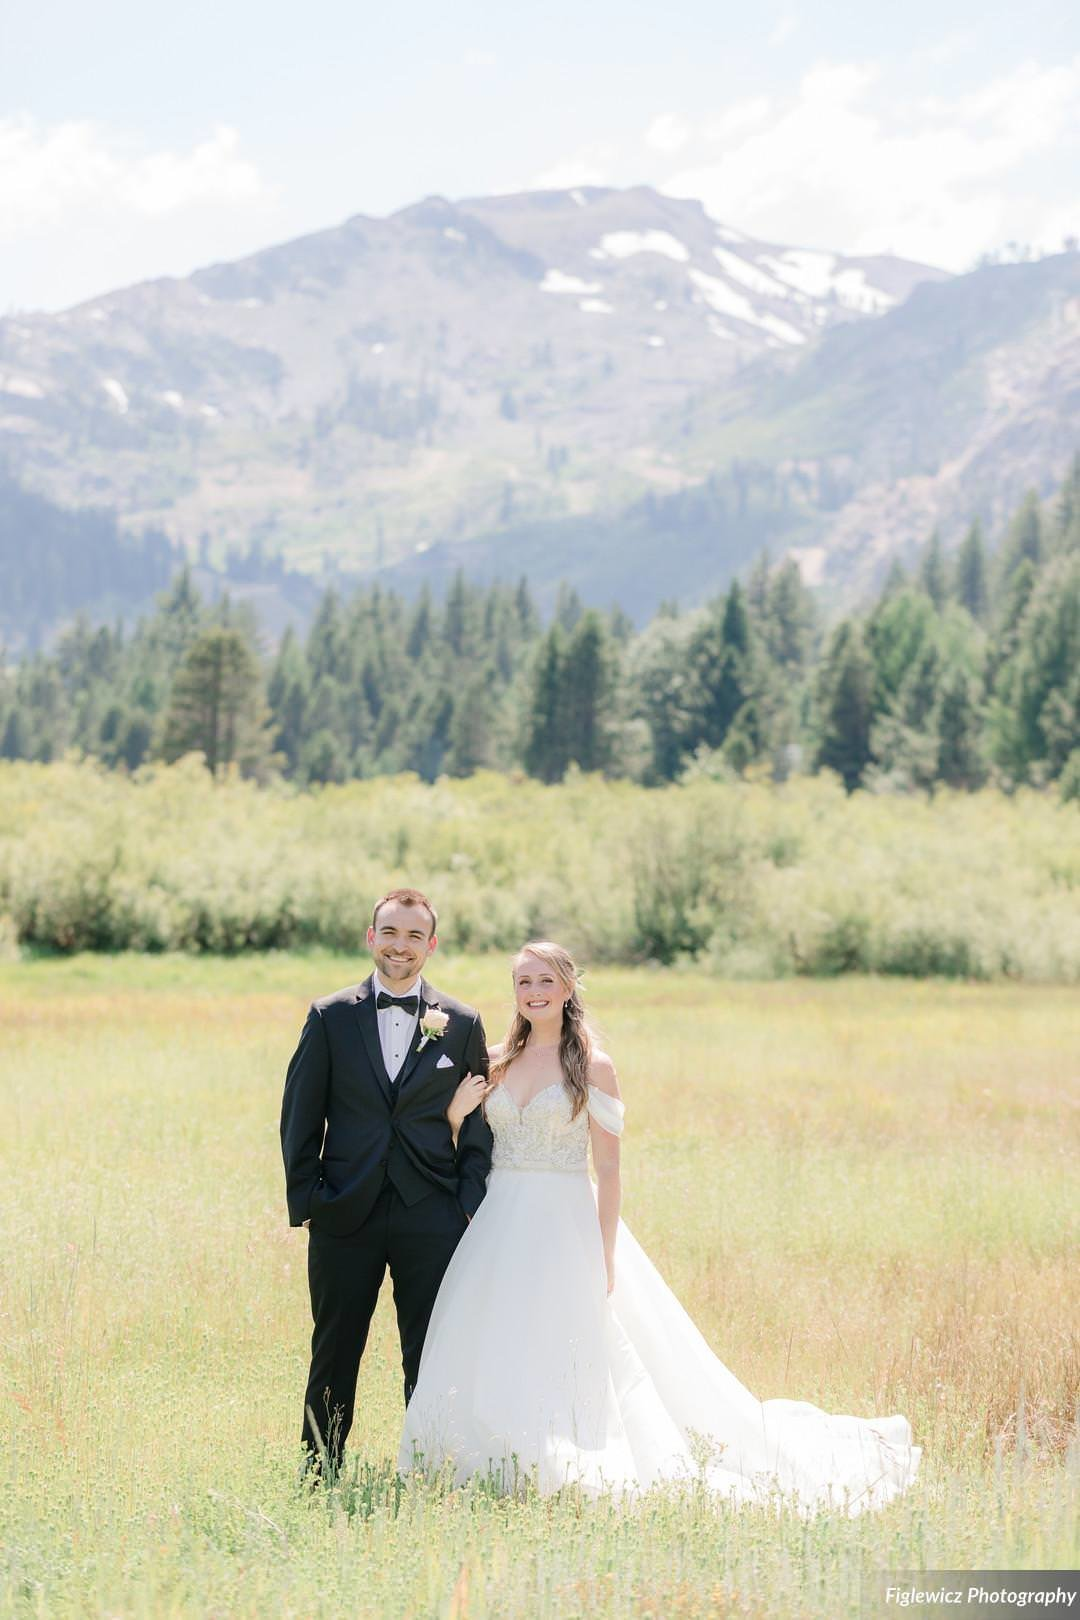 Garden_Tinsley_FiglewiczPhotography_LakeTahoeWeddingSquawValleyCreekTaylorBrendan00022_big